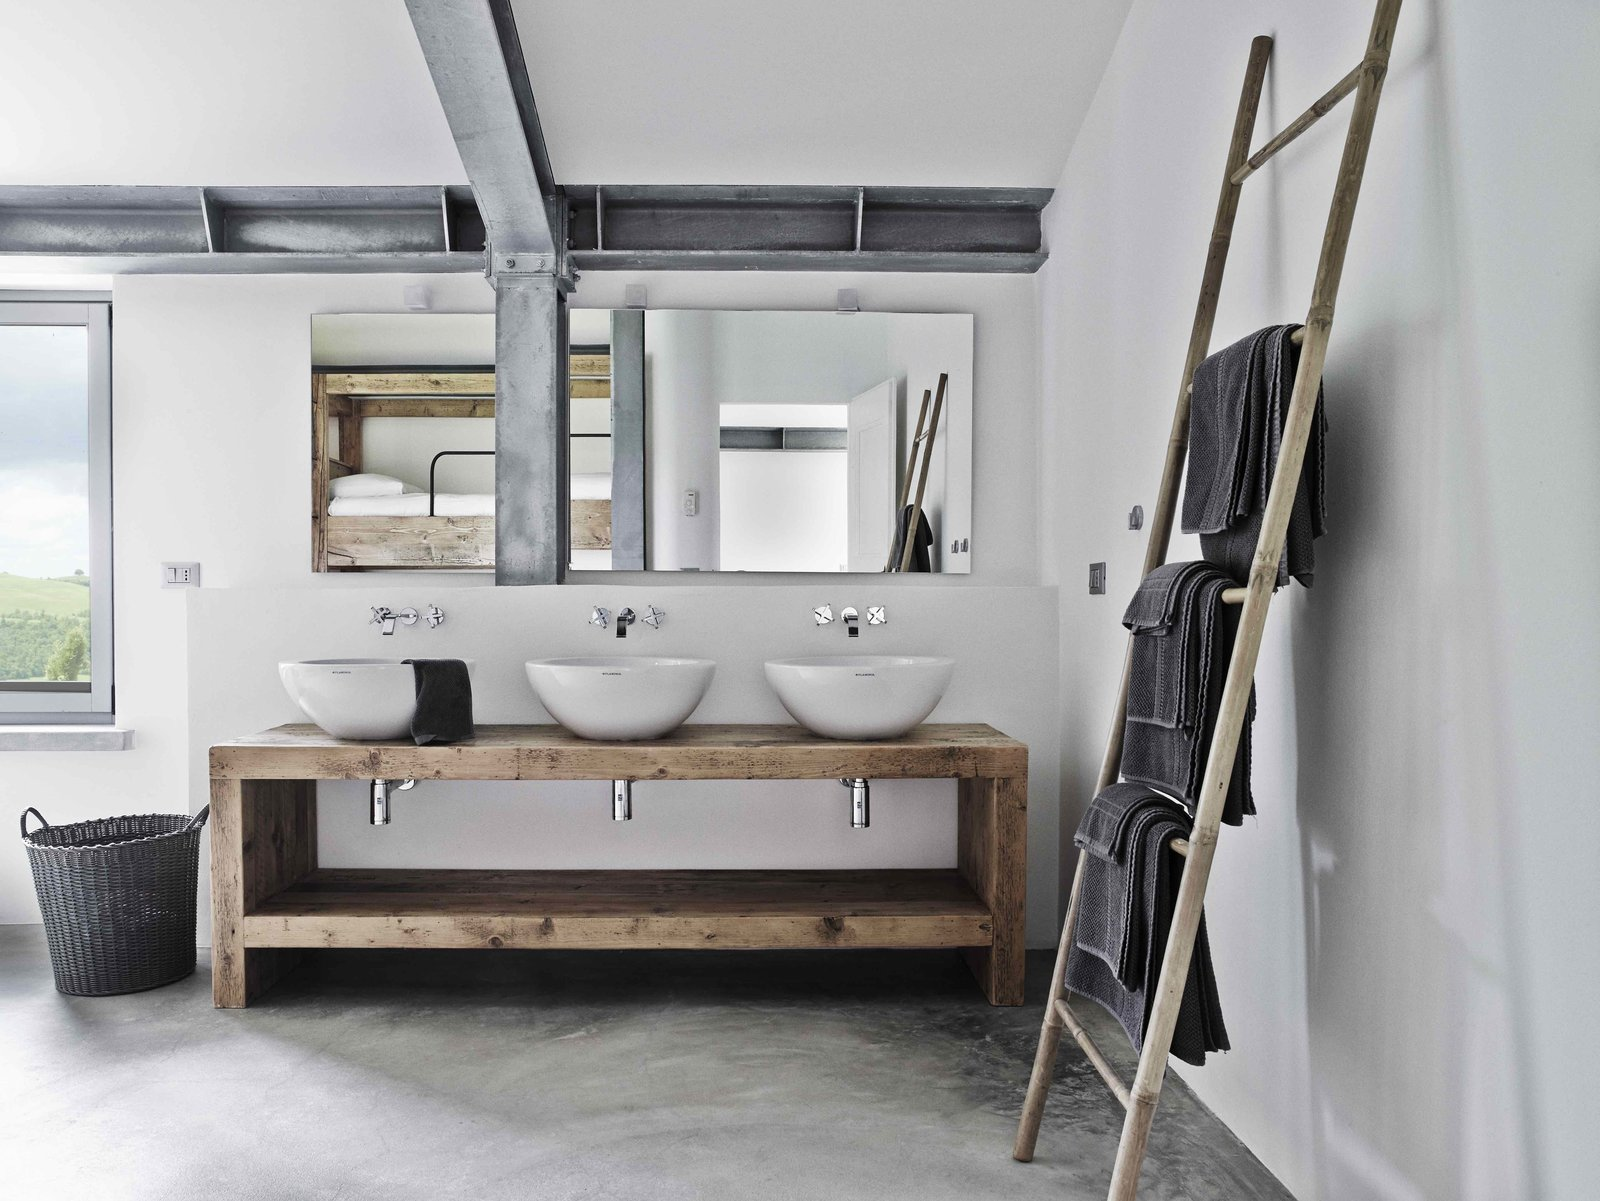 Bath Room, Wood Counter, Concrete Floor, Vessel Sink, and Wall Lighting  Photo 9 of 11 in Stay in a Modern, Industrial Home That's Hidden Inside a Traditional Tuscan Villa